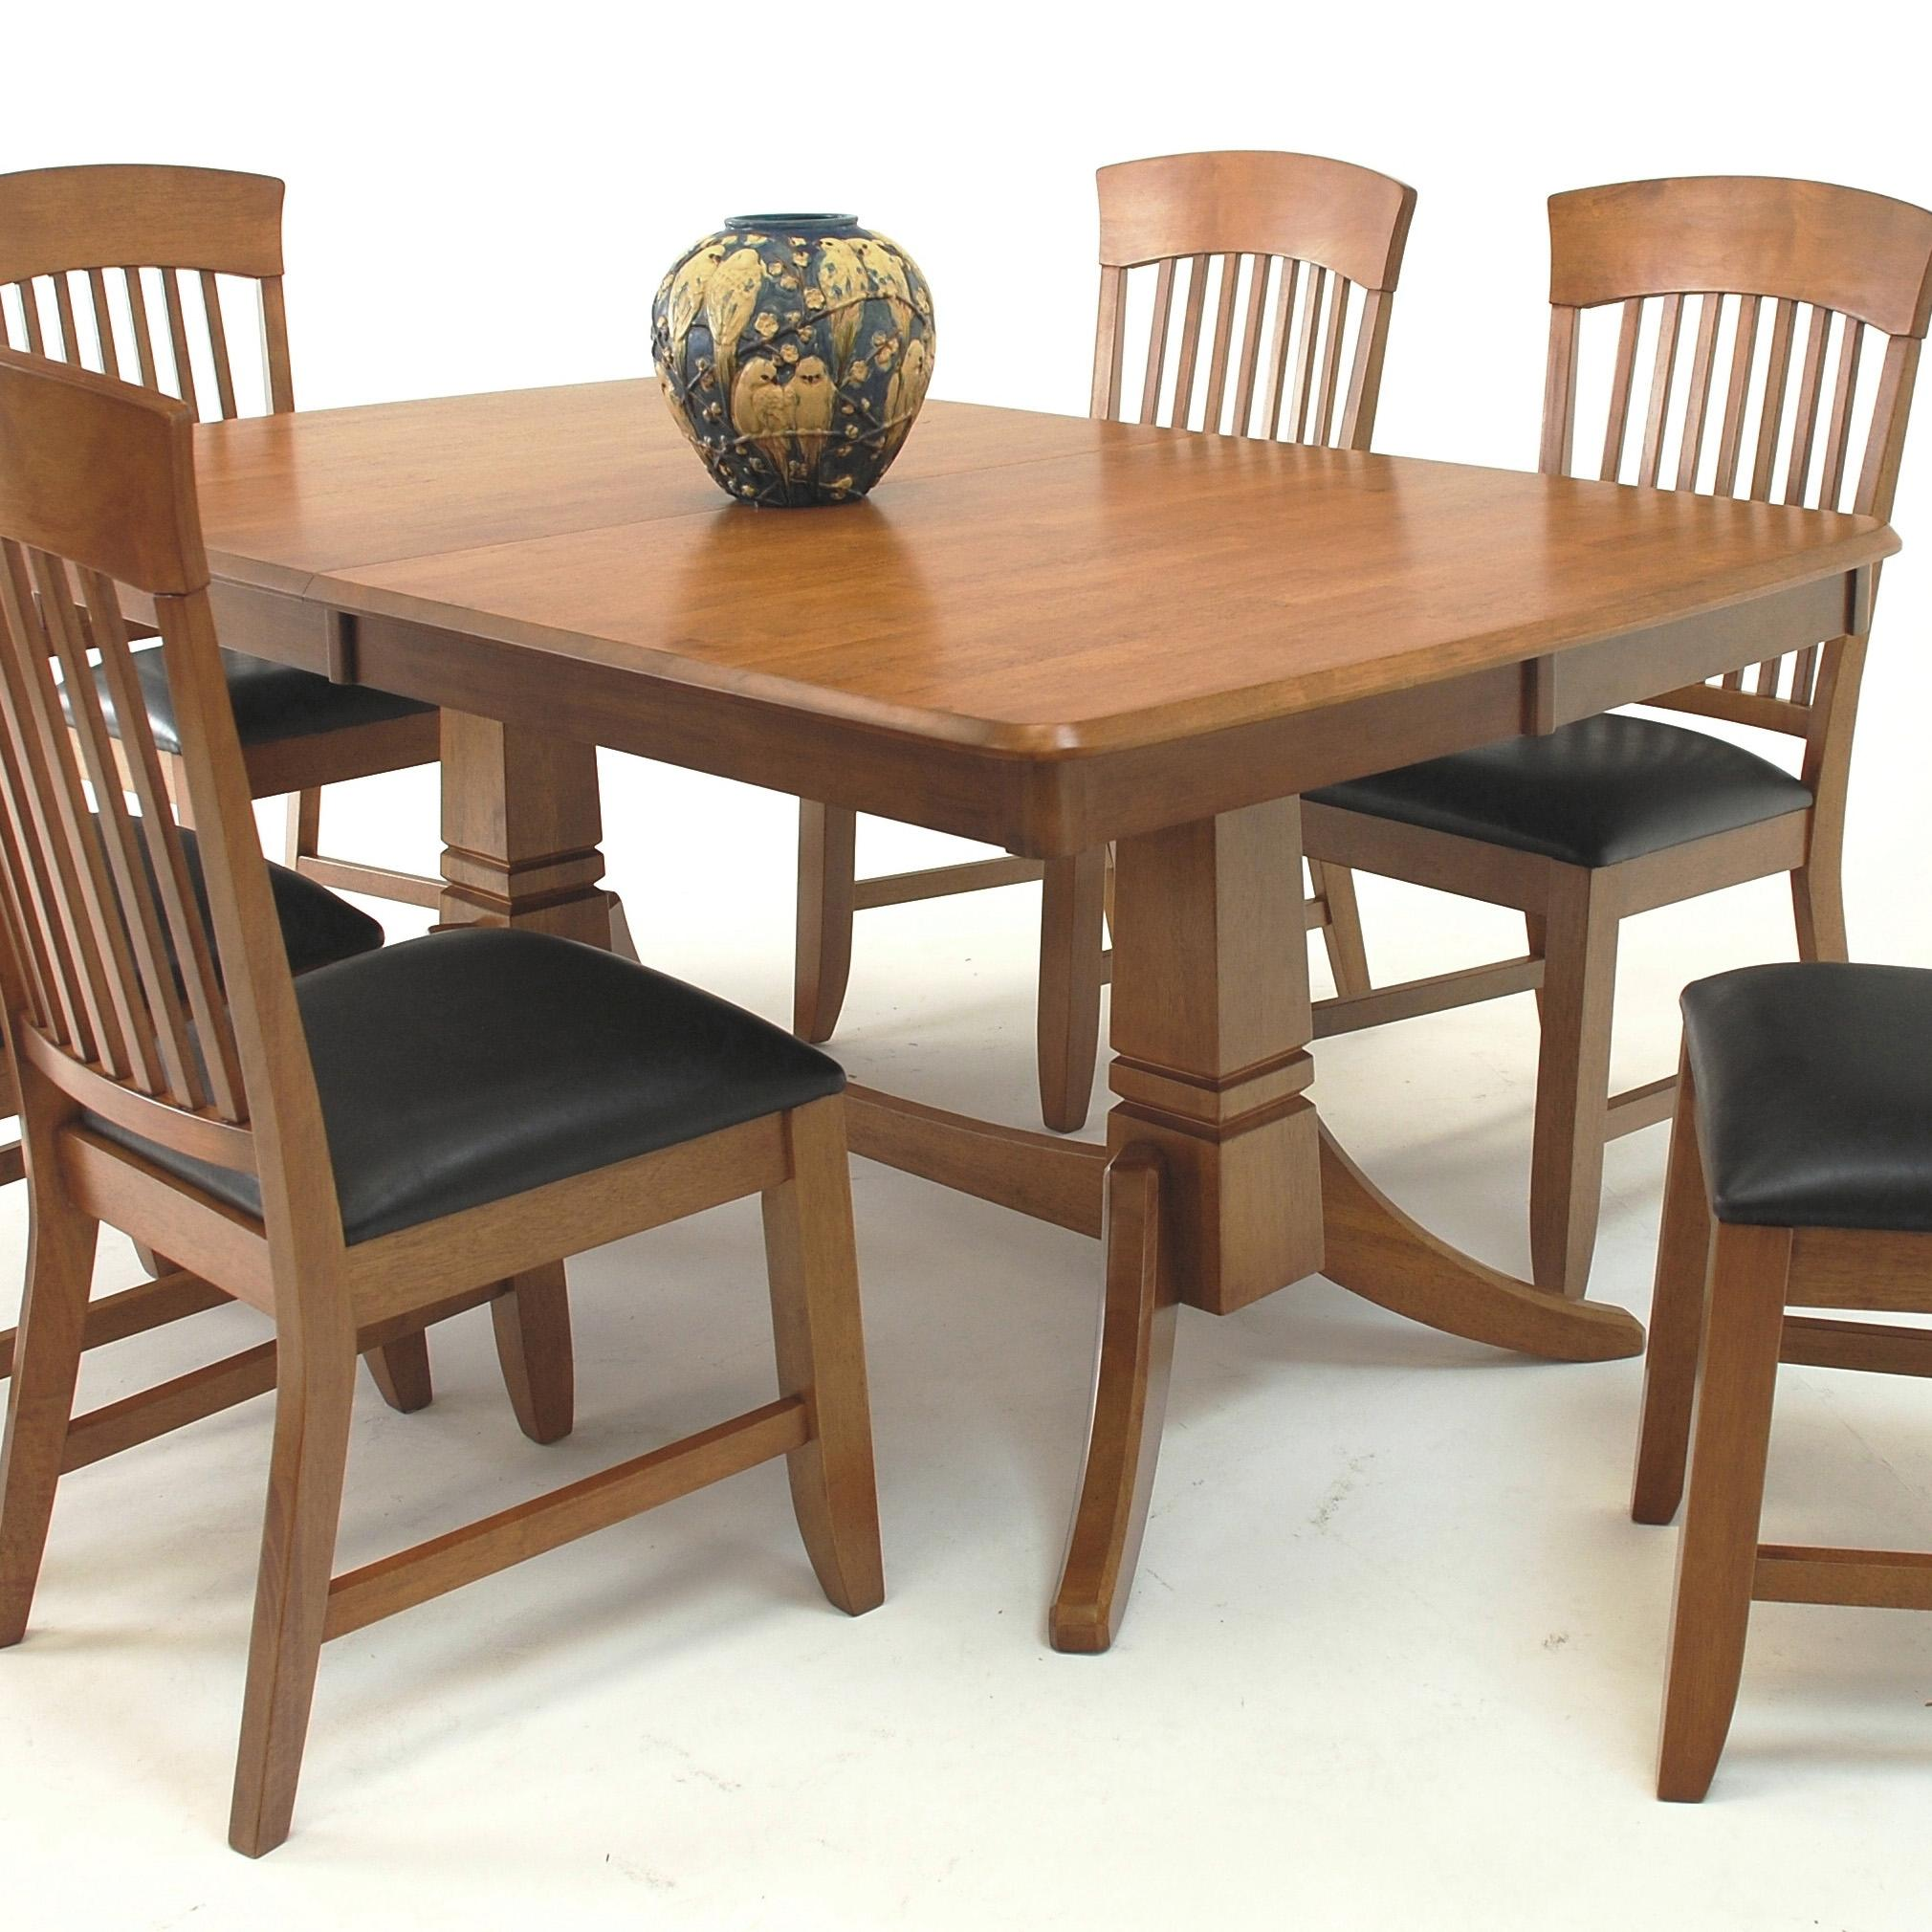 Trestle Dining Room Sets Suburban Home Trestle Dining Table And Chair Set Broadway